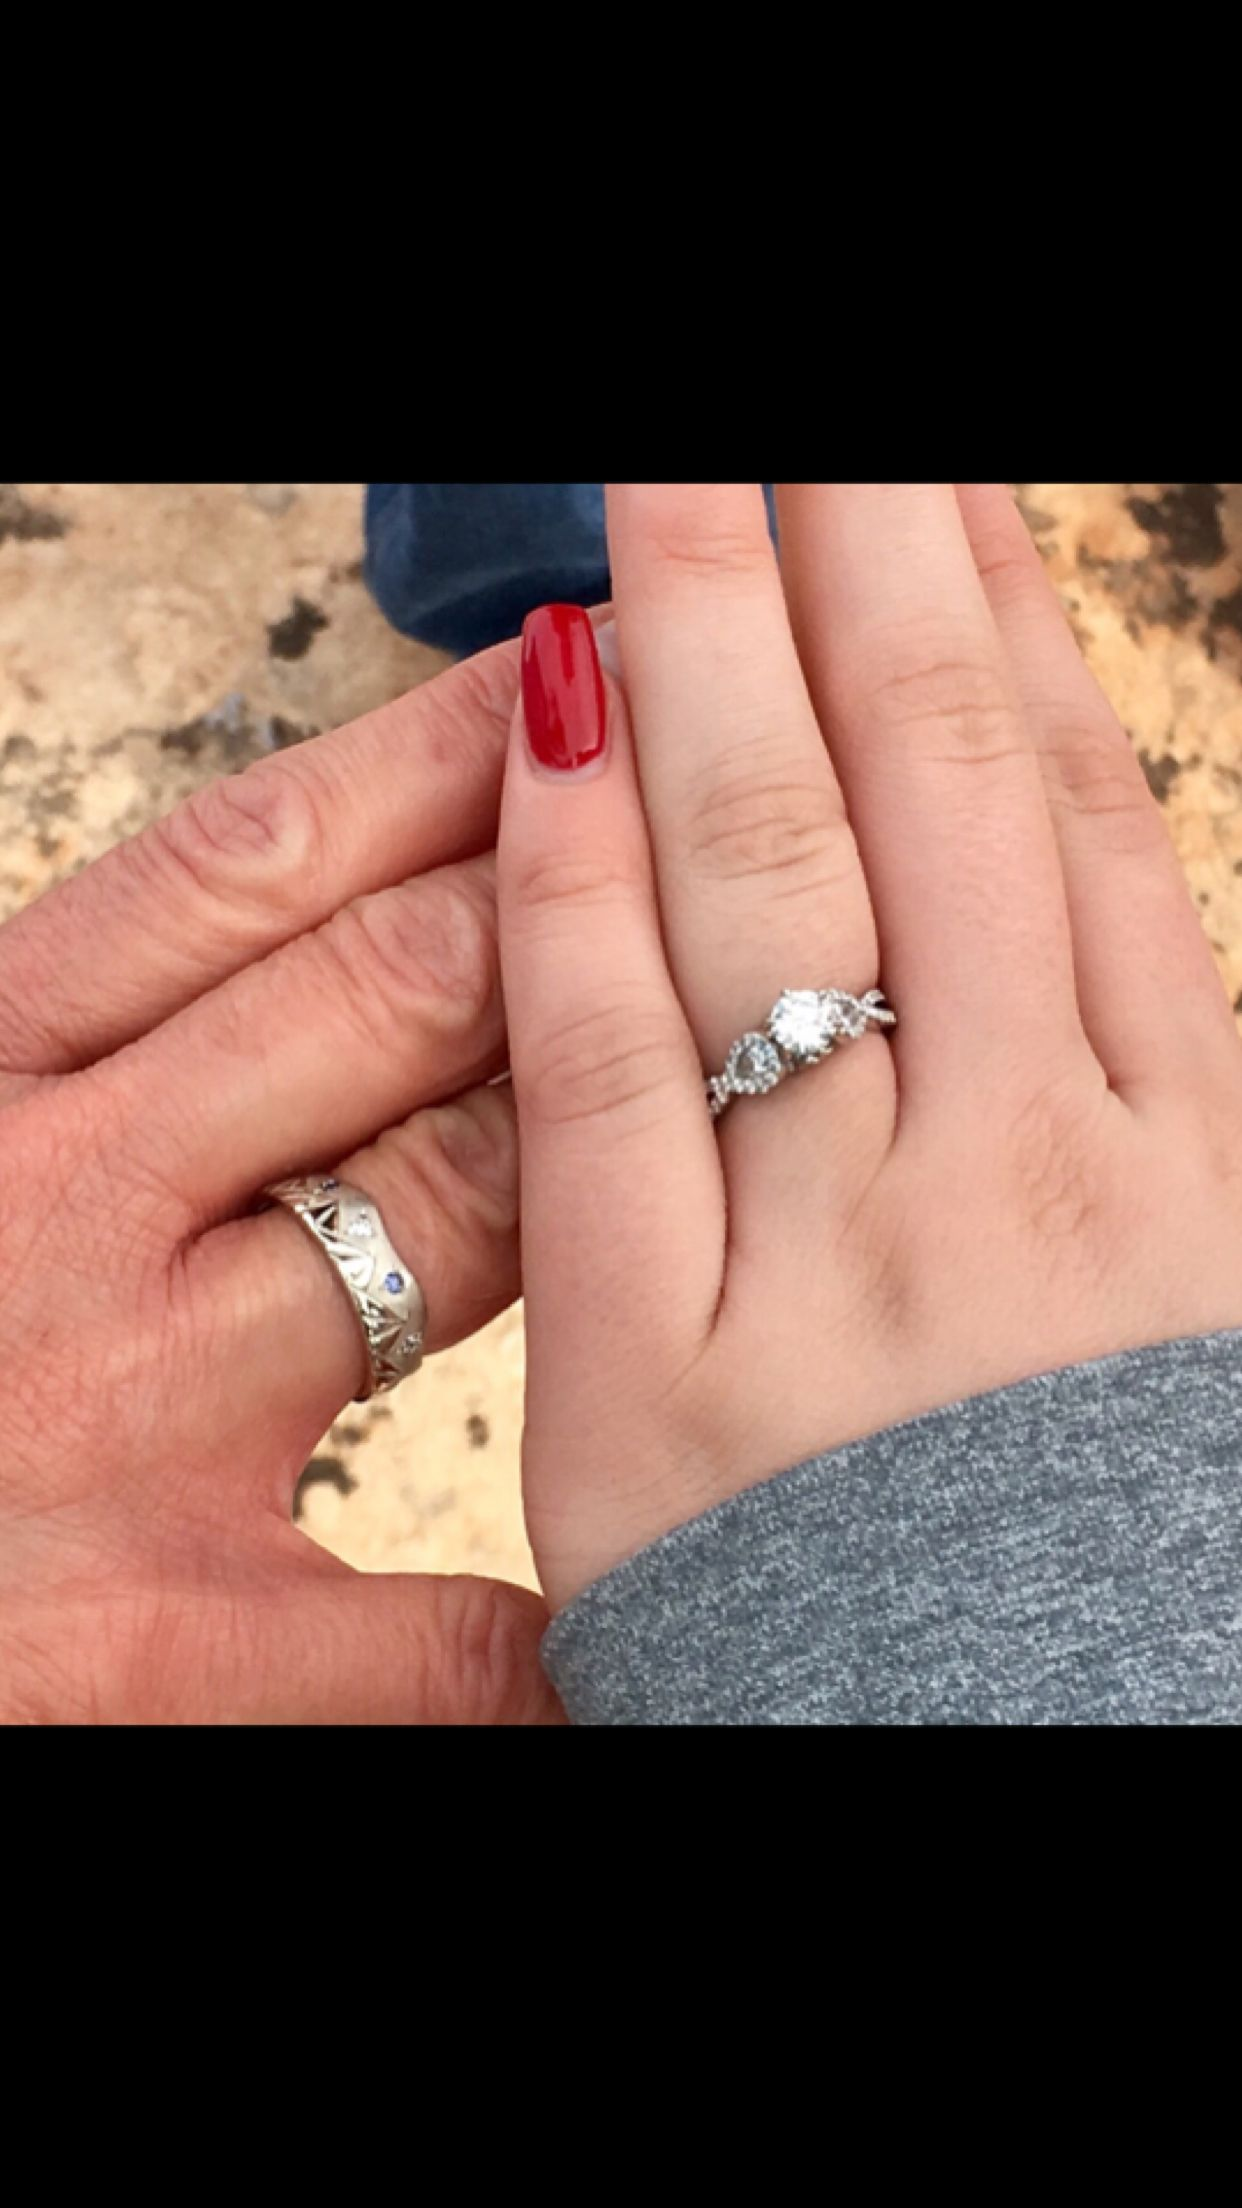 New Engagement Ring and a 25 Year Anniversary Band